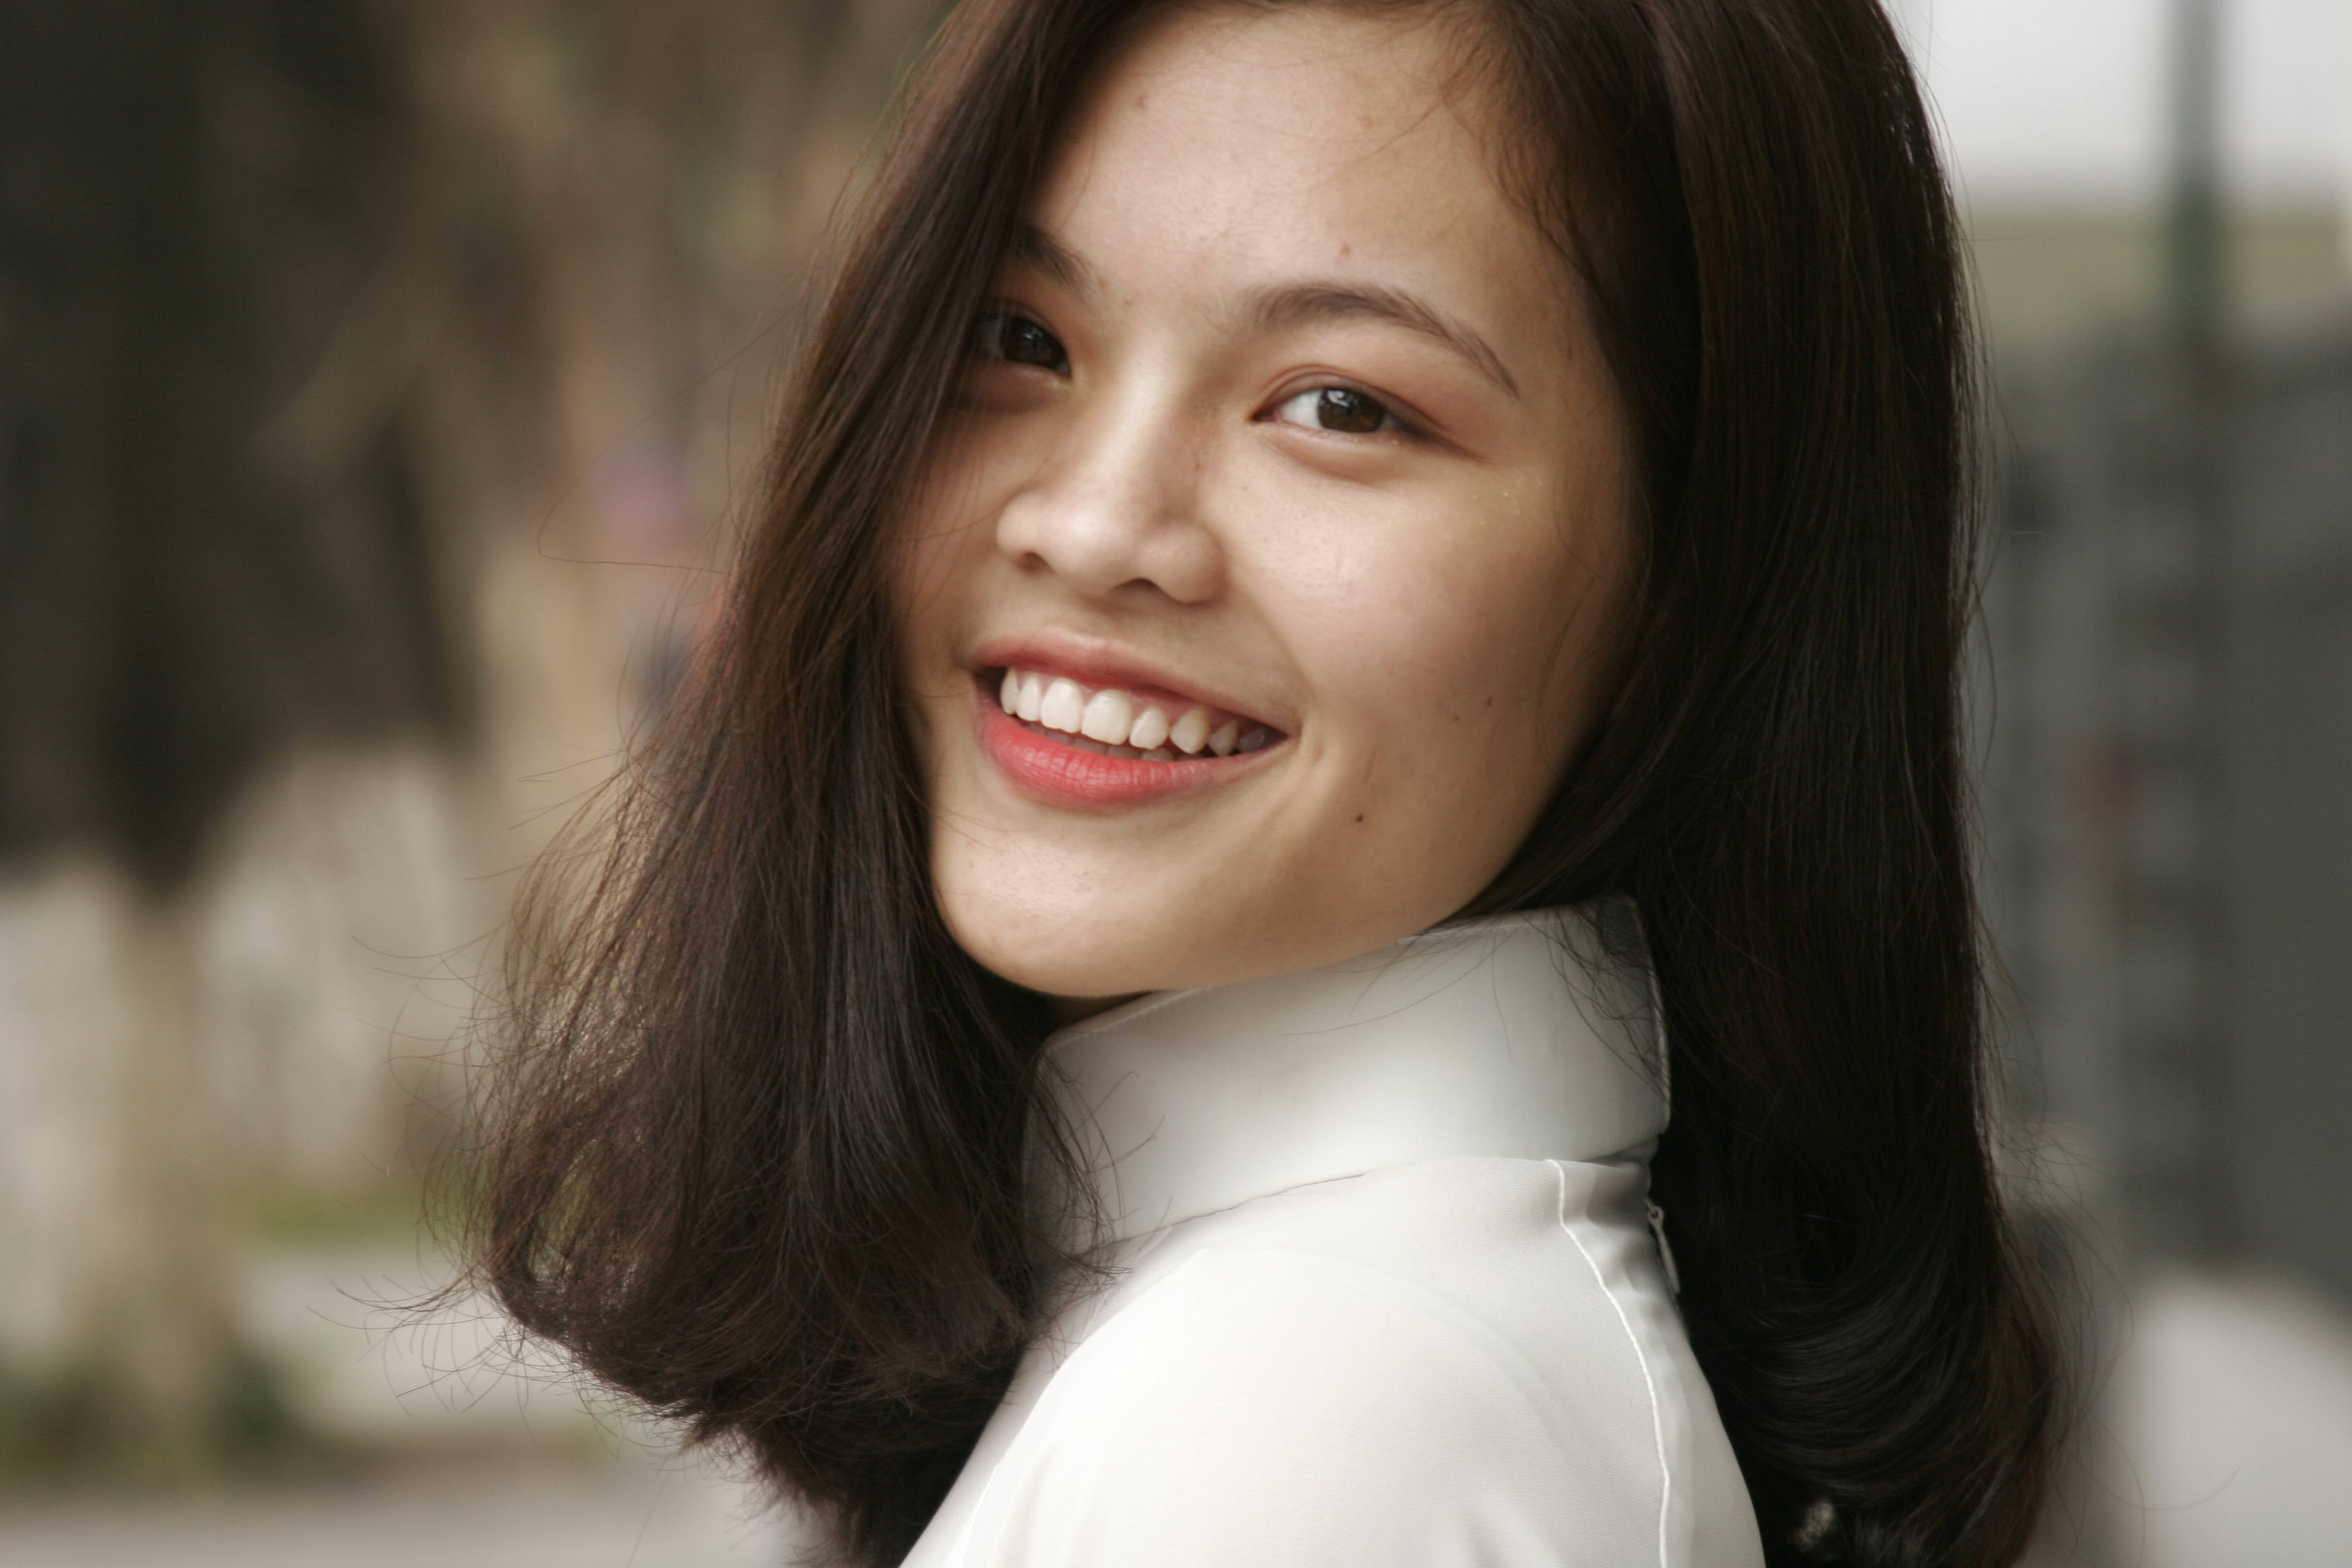 Smiling Woman Wearing White Turtleneck Top